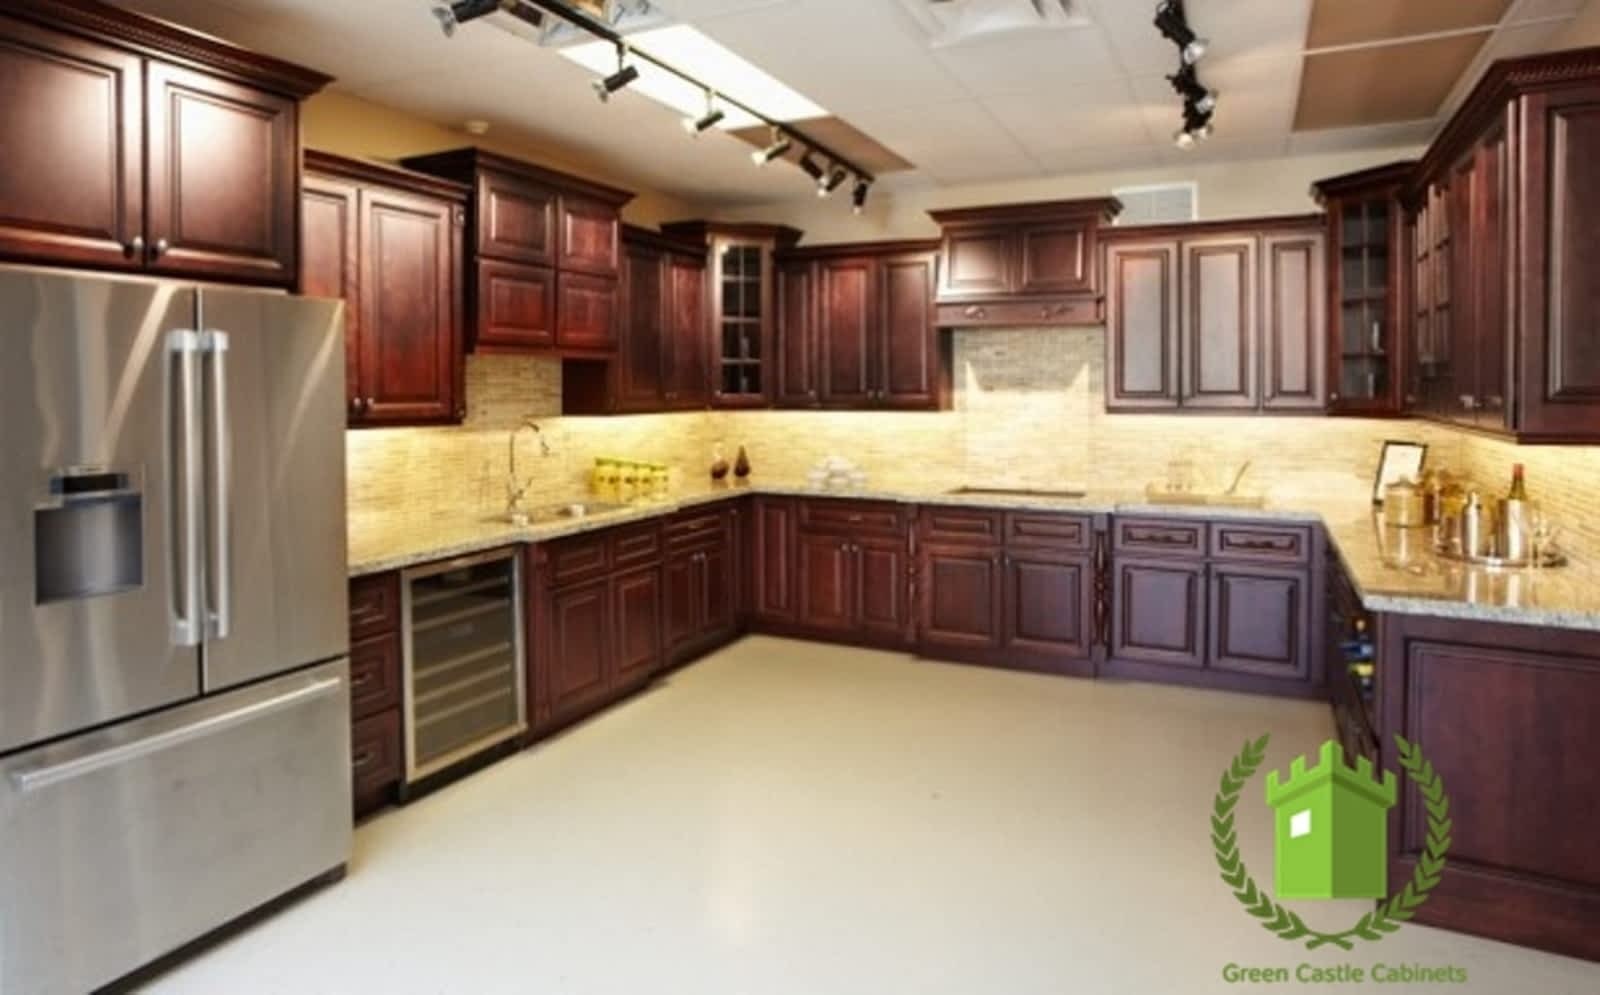 green castle cabinets - opening hours - 1100c lansdowne dr